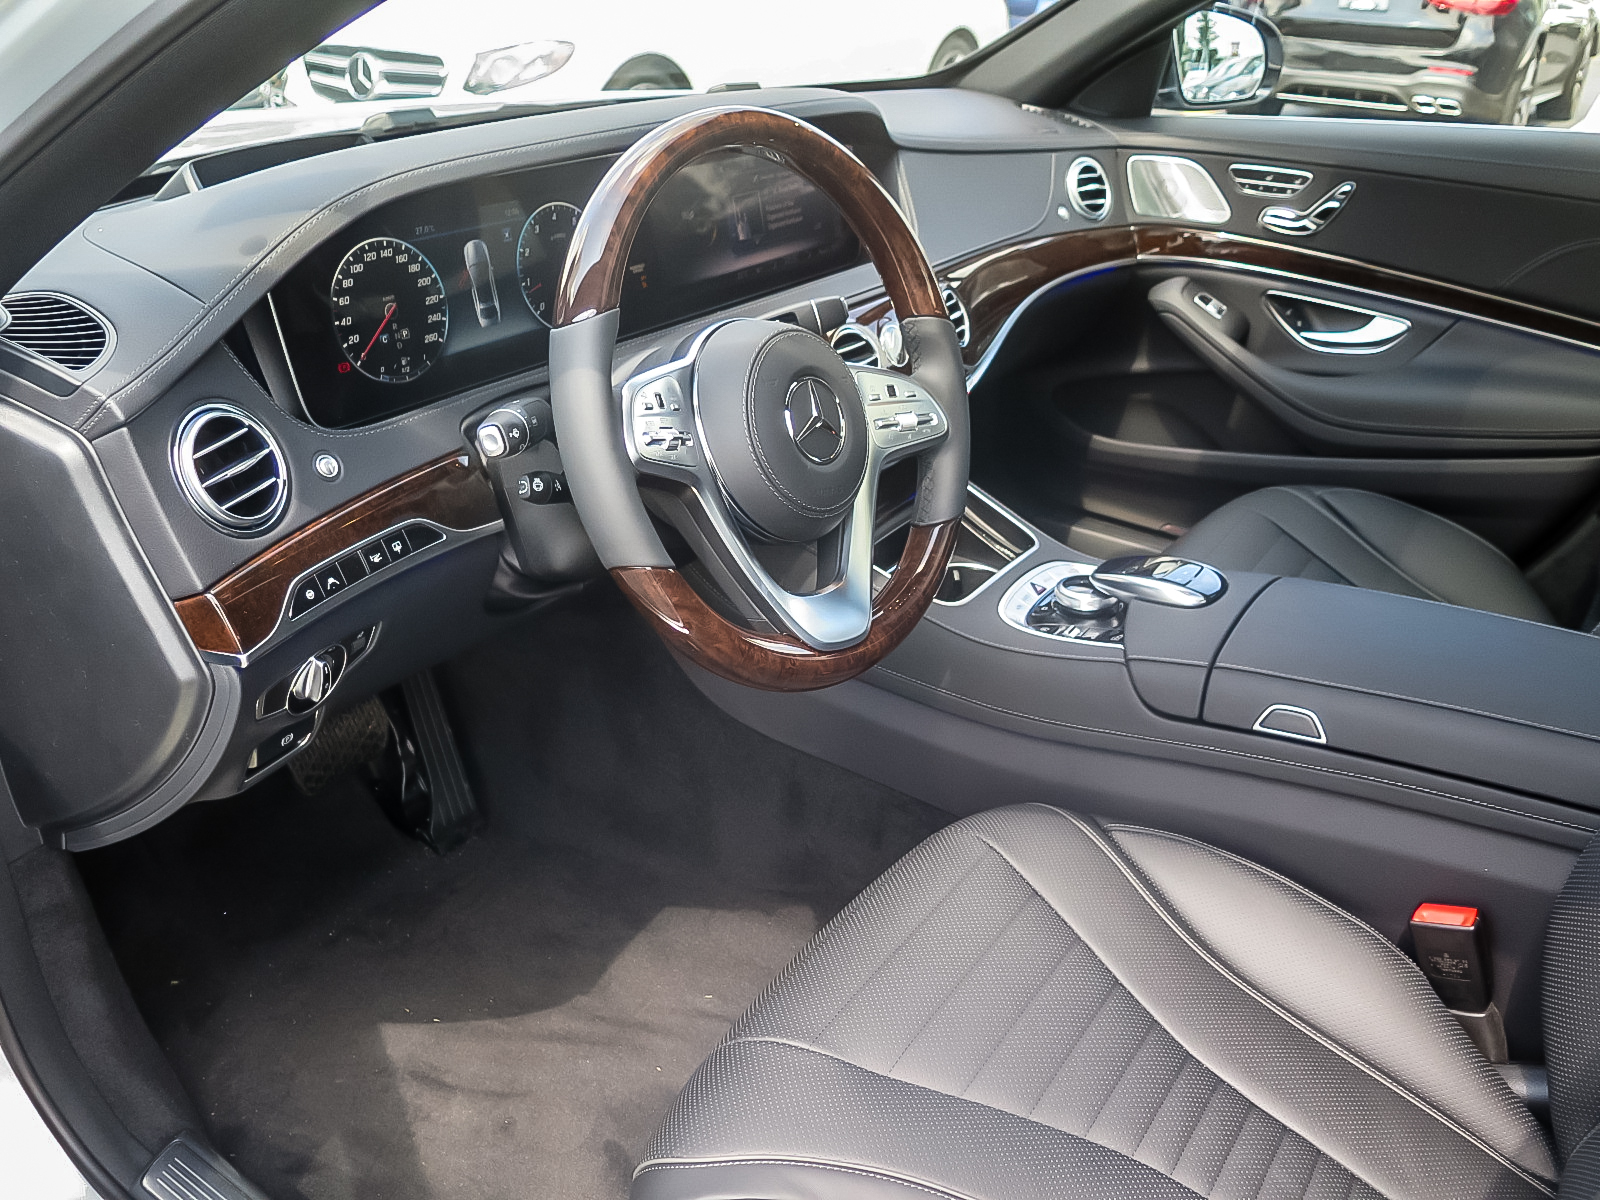 New 2019 Mercedes-Benz S560 4MATIC Sedan (LWB)